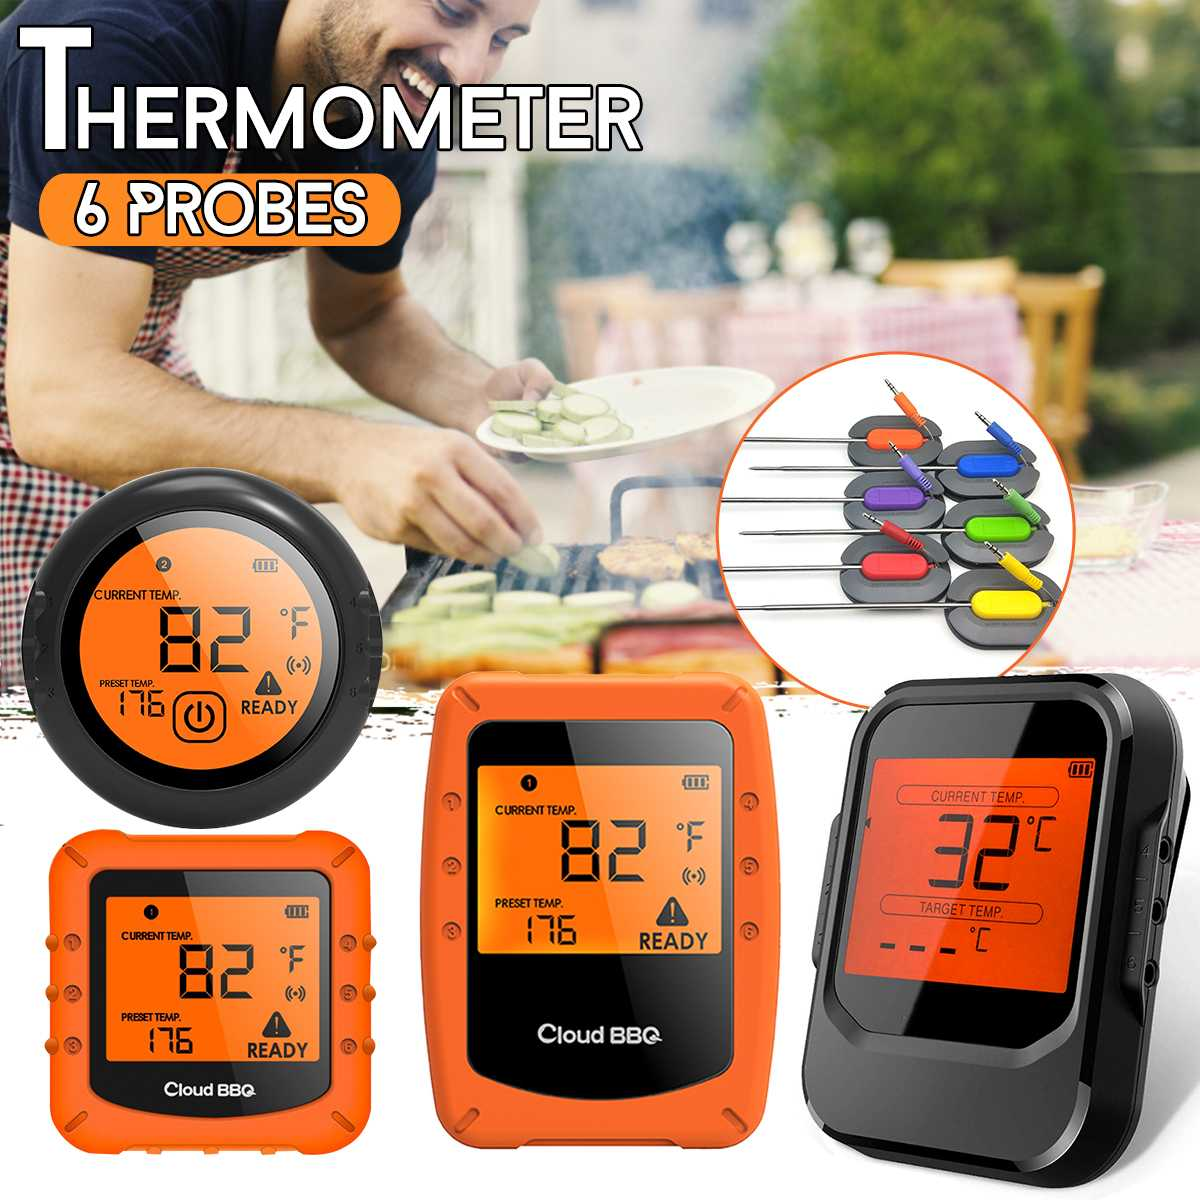 Digital Wireless BBQ Thermometer With 6 Probes bluetooth Control Food Cooking Timer Oven Meat Grill Thermometer Kitchen Tool(China)